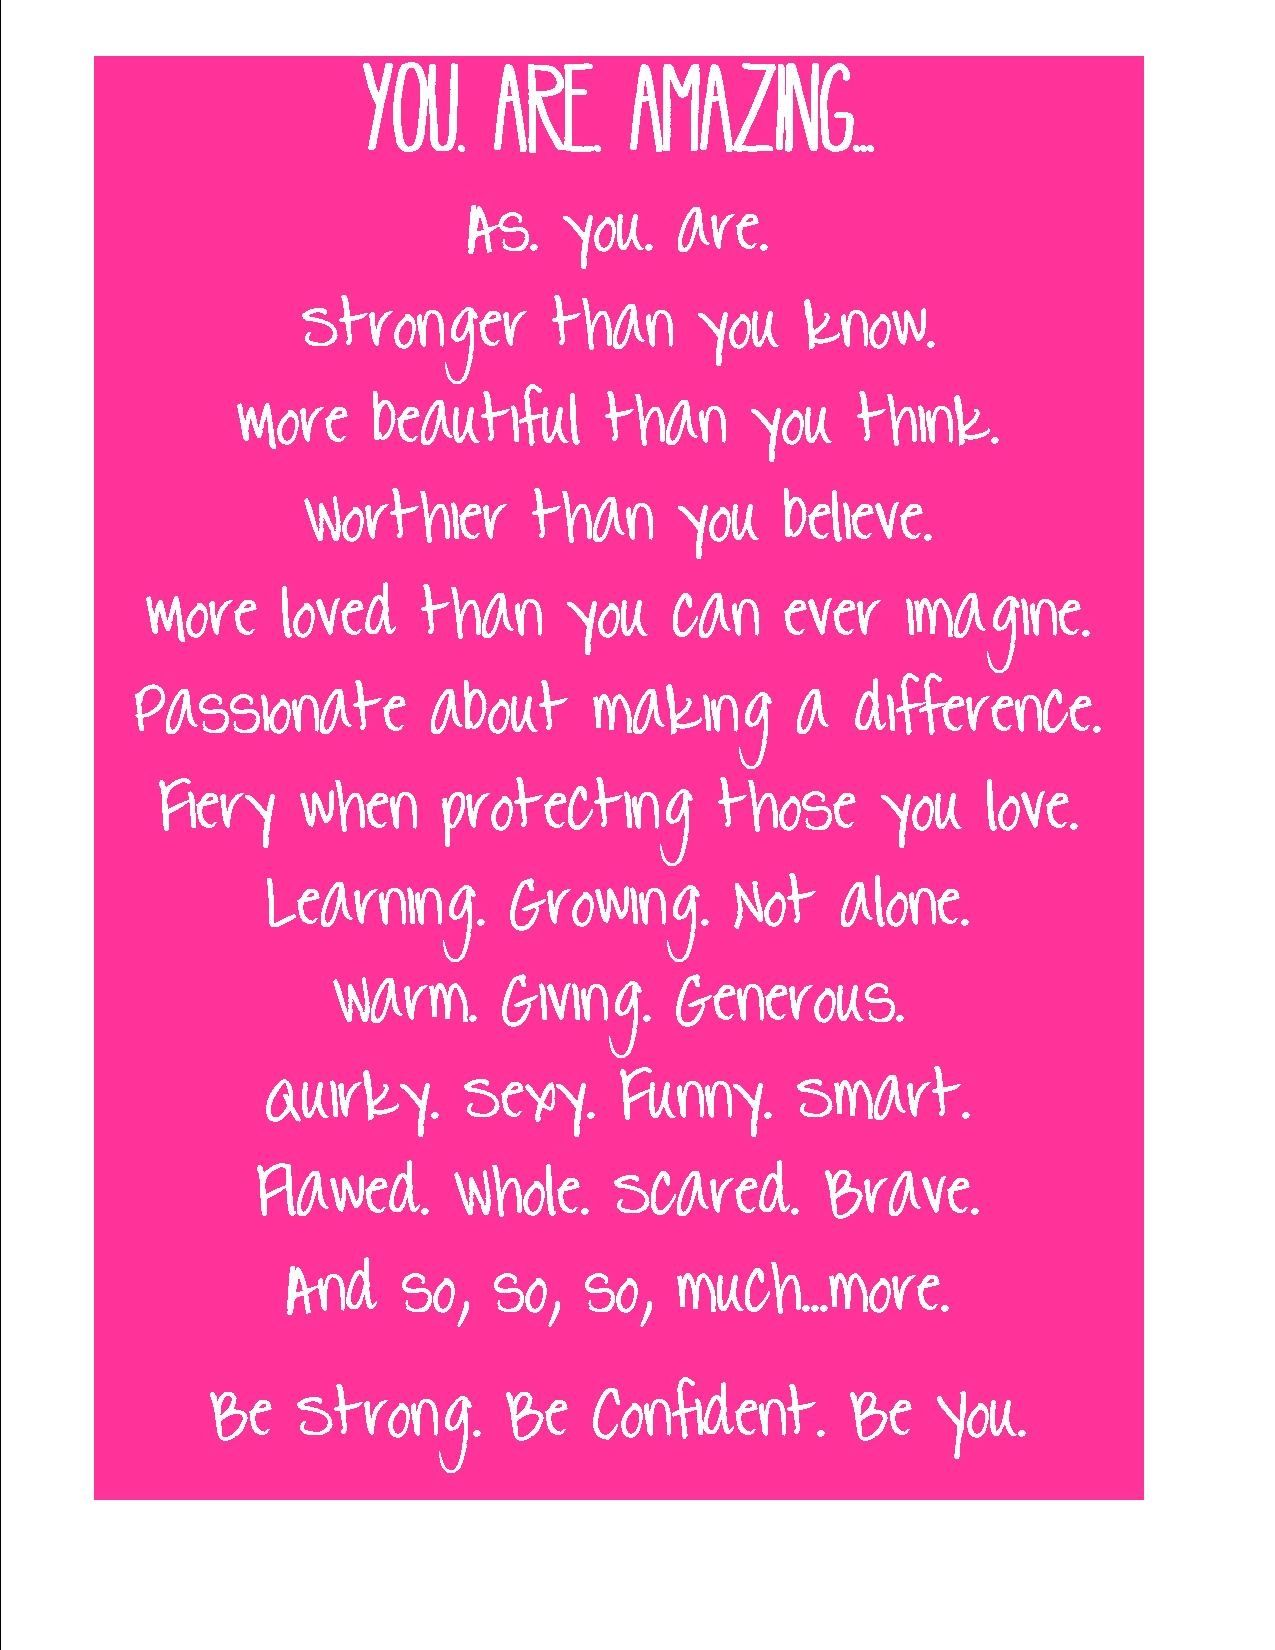 You Are Amazing Funny Uplifting Quotes Encouragement Quotes Birthday Quotes Inspirational